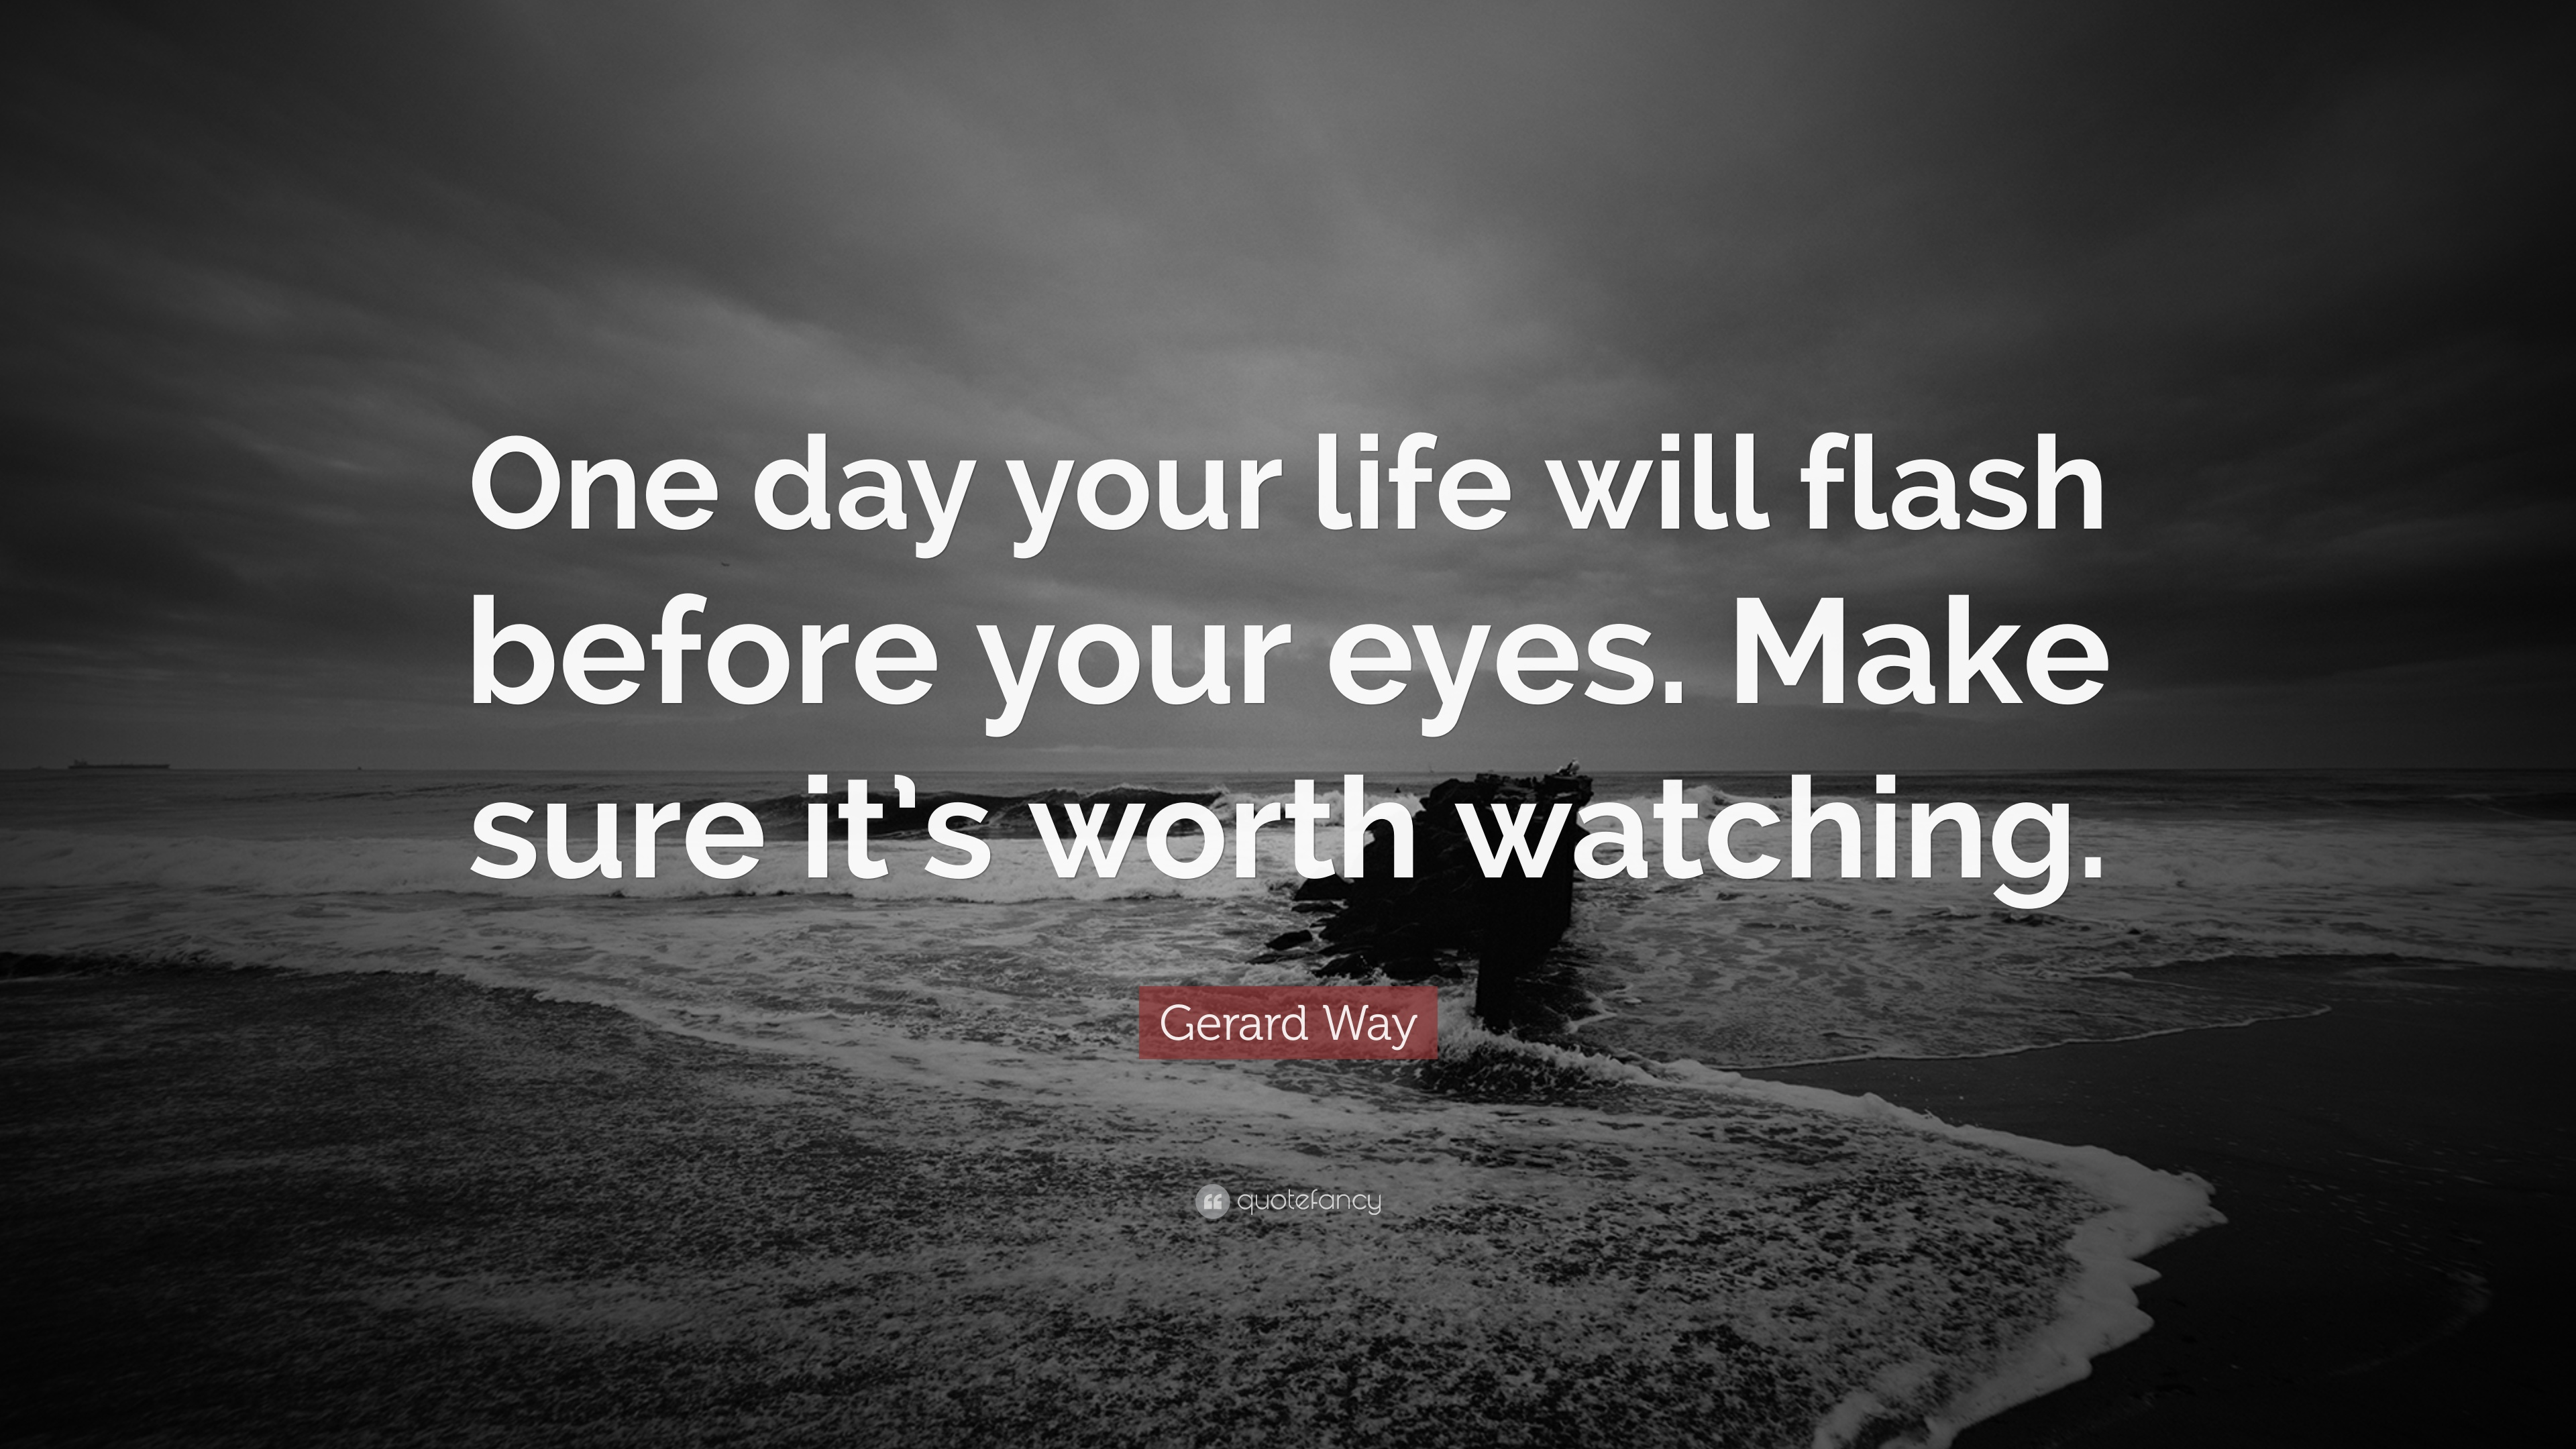 Gerard Way Quote: U201cOne Day Your Life Will Flash Before Your Eyes. Make